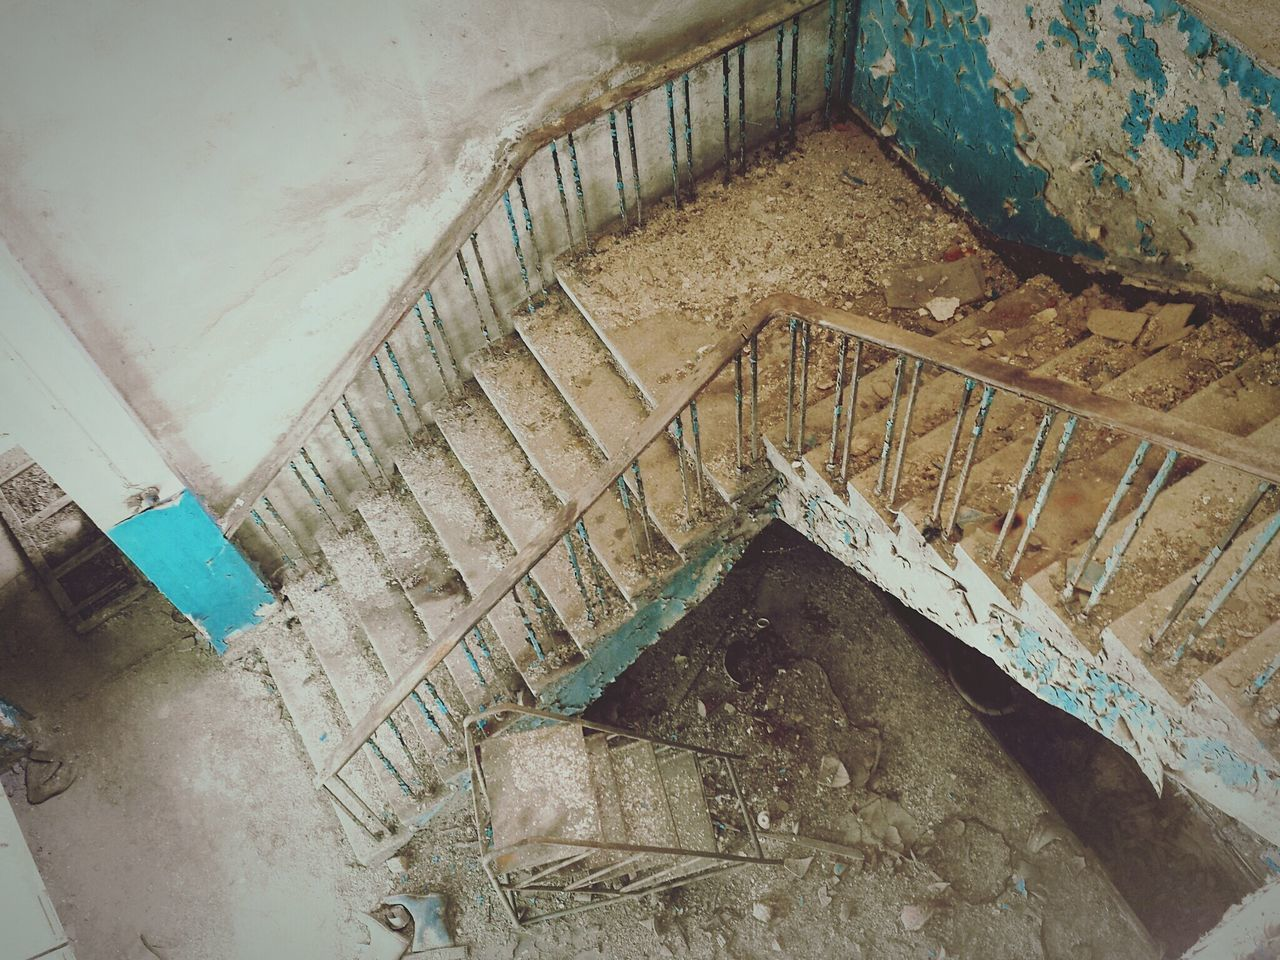 architecture, built structure, abandoned, indoors, damaged, old, run-down, obsolete, deterioration, wall - building feature, building exterior, weathered, building, bad condition, steps, window, house, staircase, wall, steps and staircases